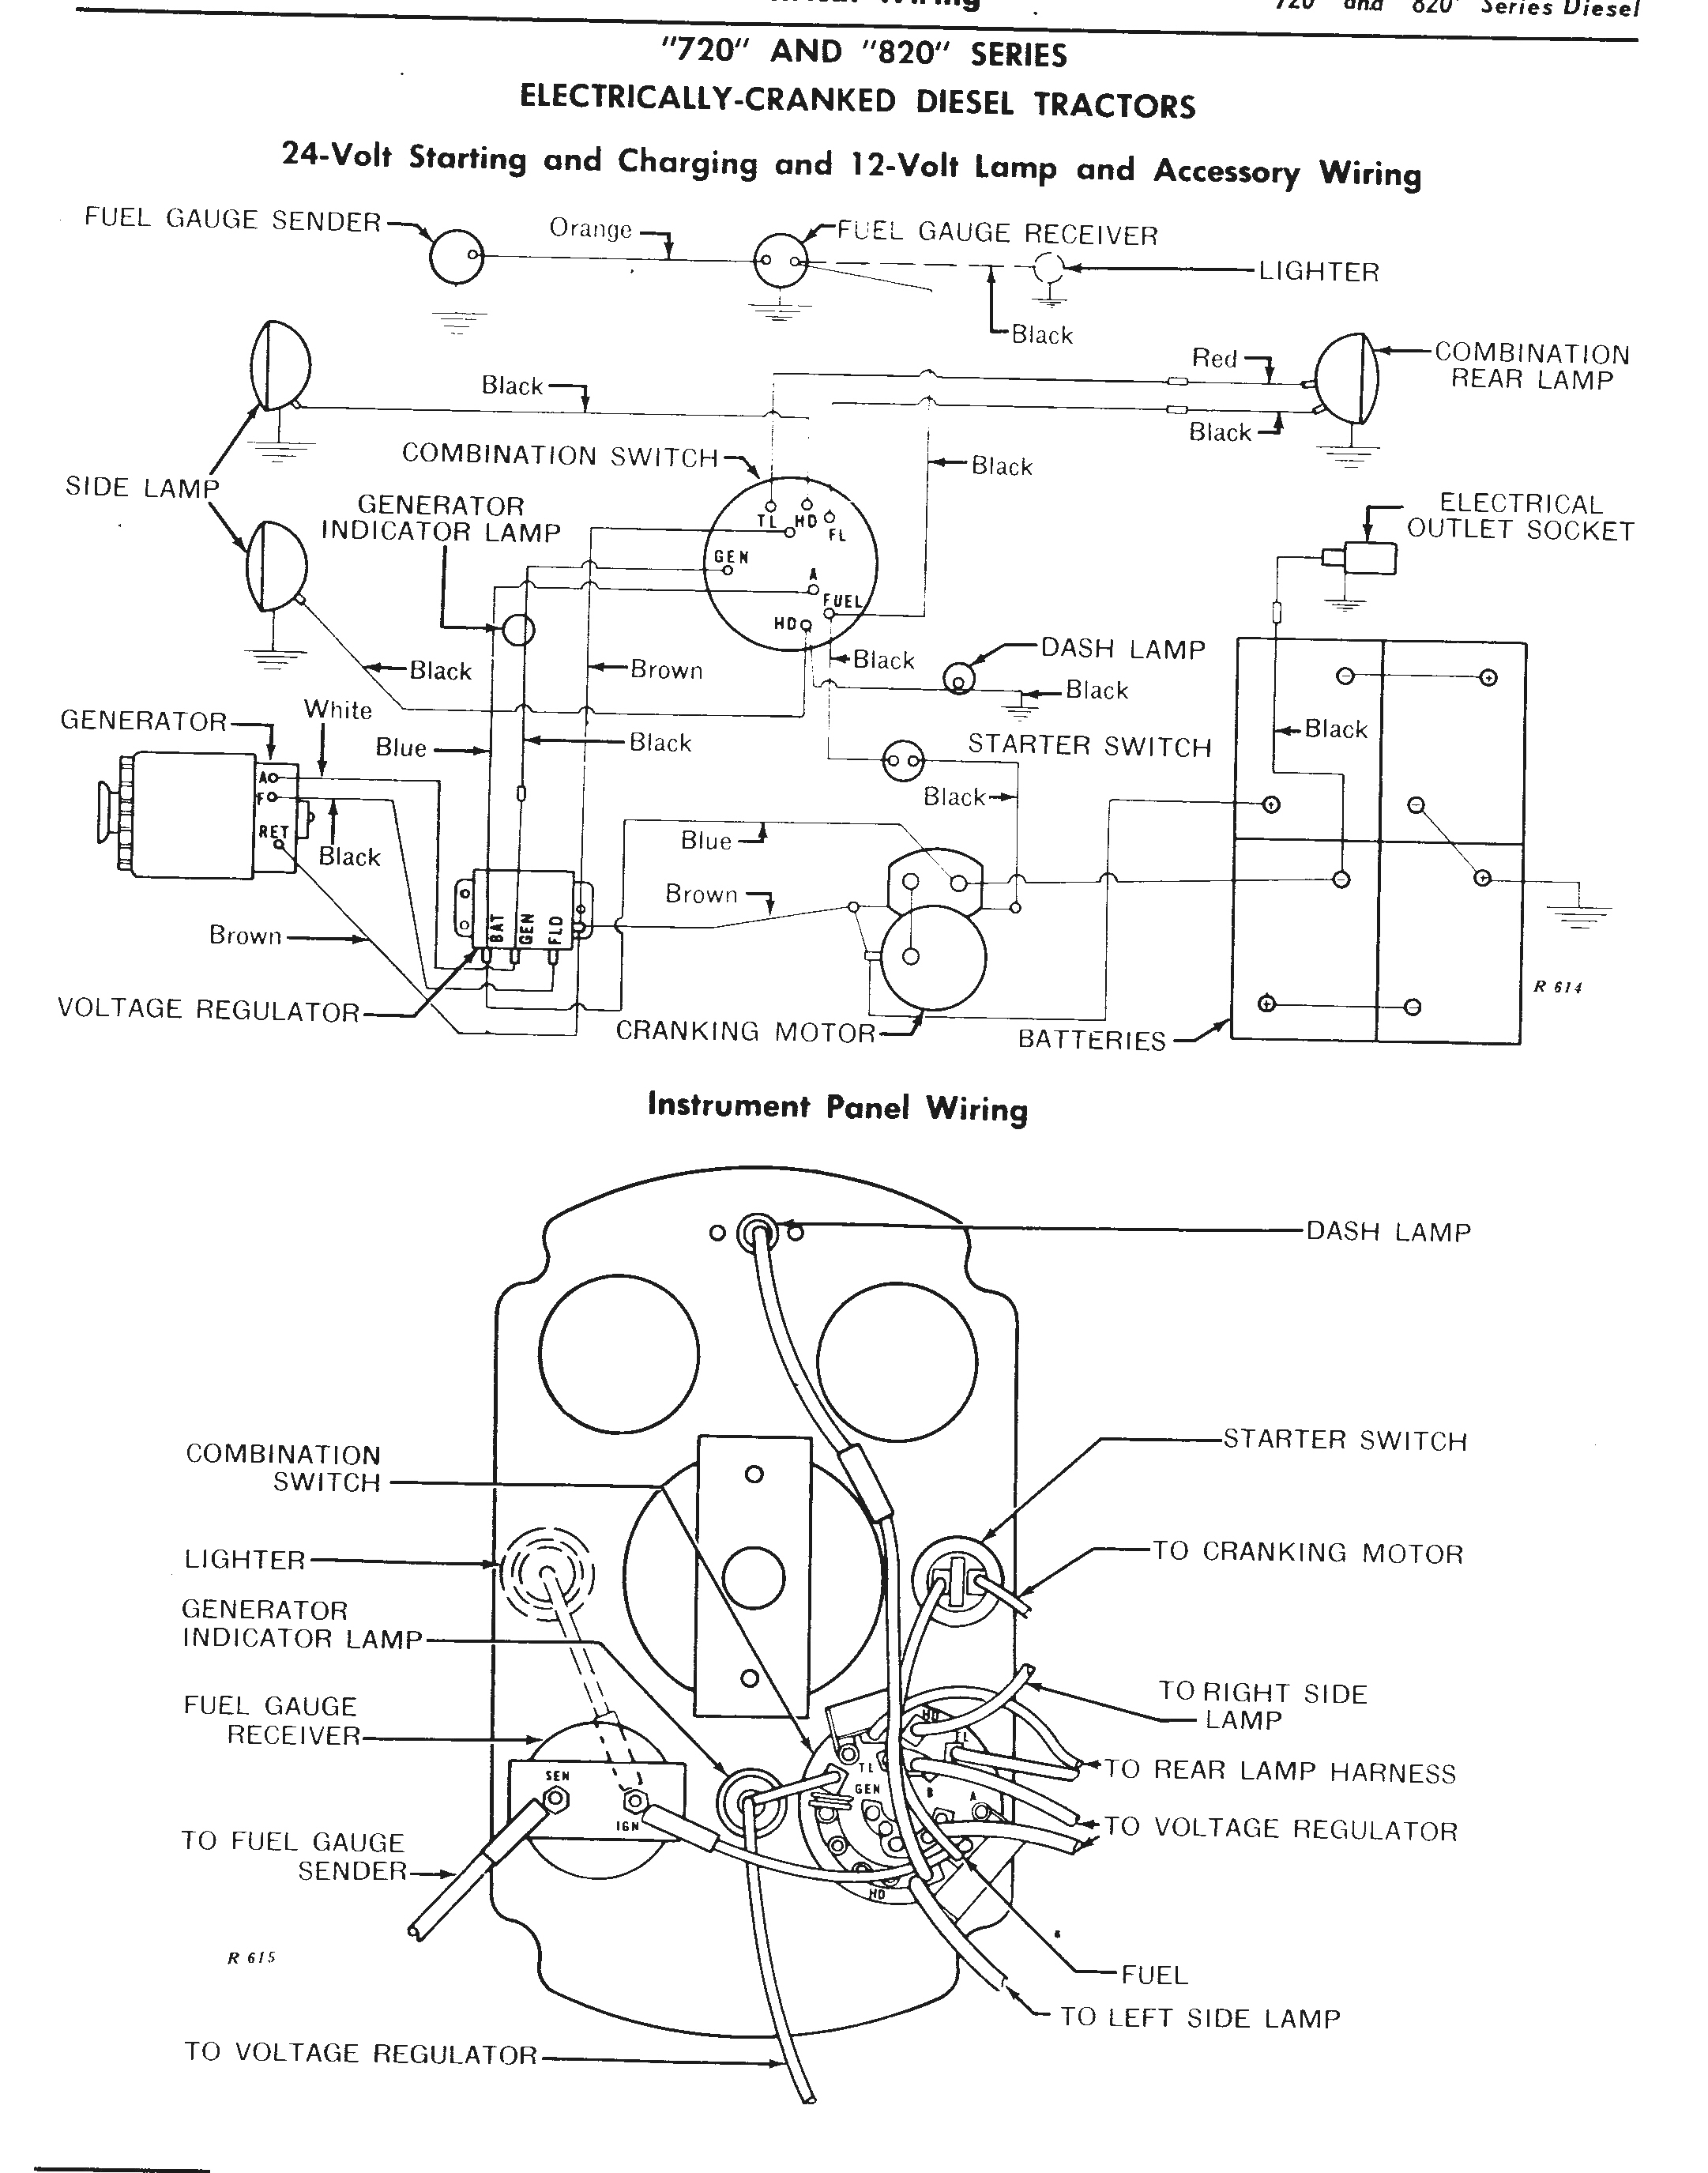 deere_24v_wiring the john deere 24 volt electrical system explained john deere 310c wiring diagram at gsmx.co